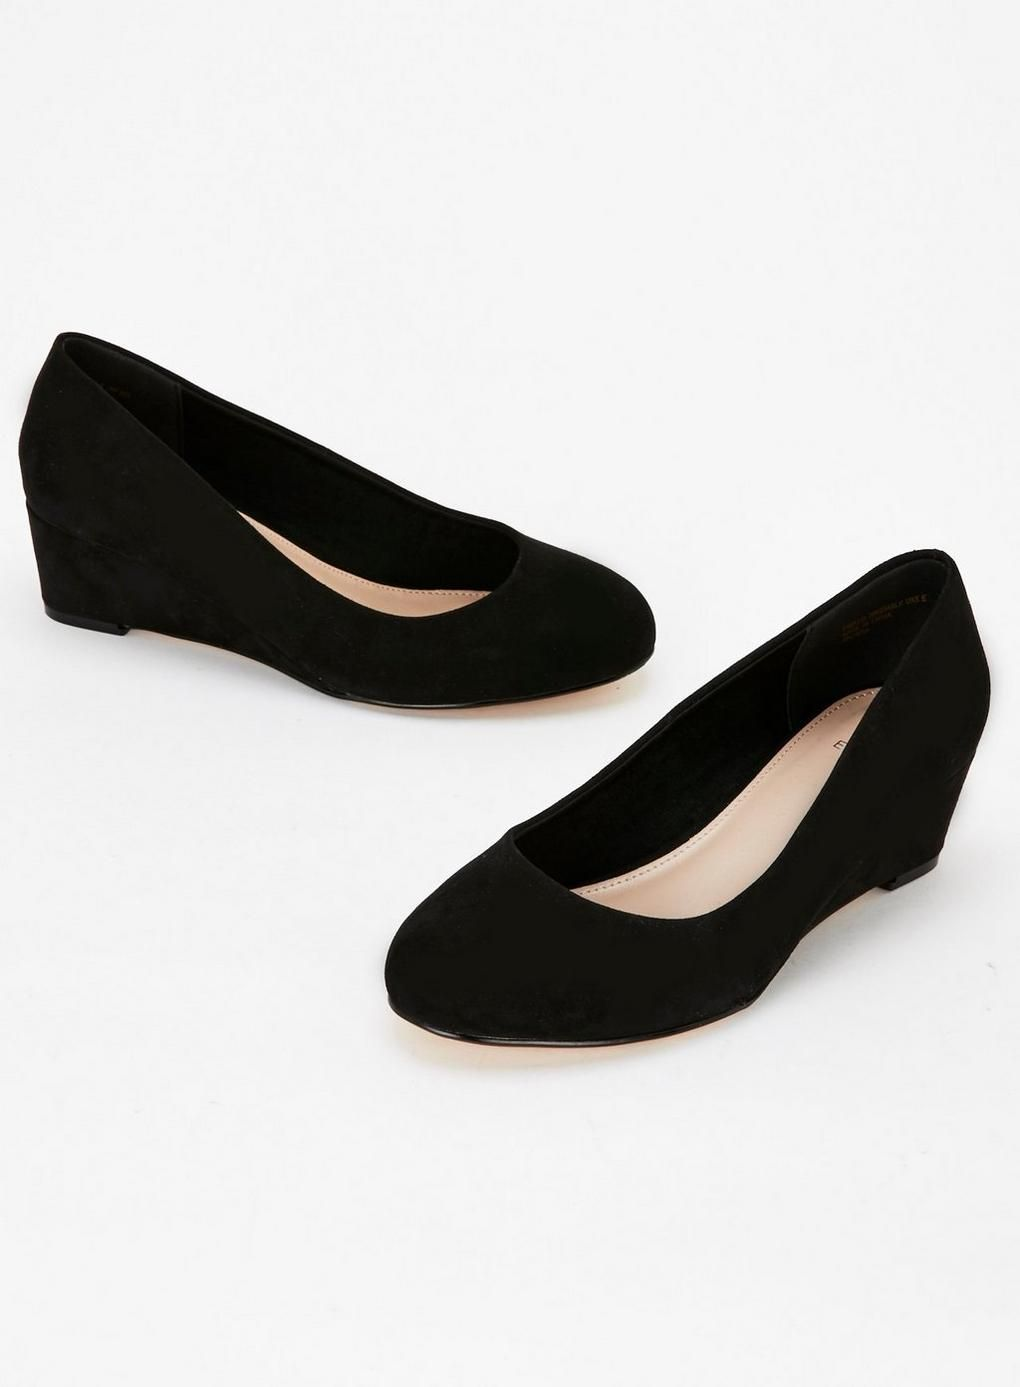 63067bc5fb WIDE FIT Black Low Wedge Shoes   shoes   Low wedges, Wedge shoes, Shoes